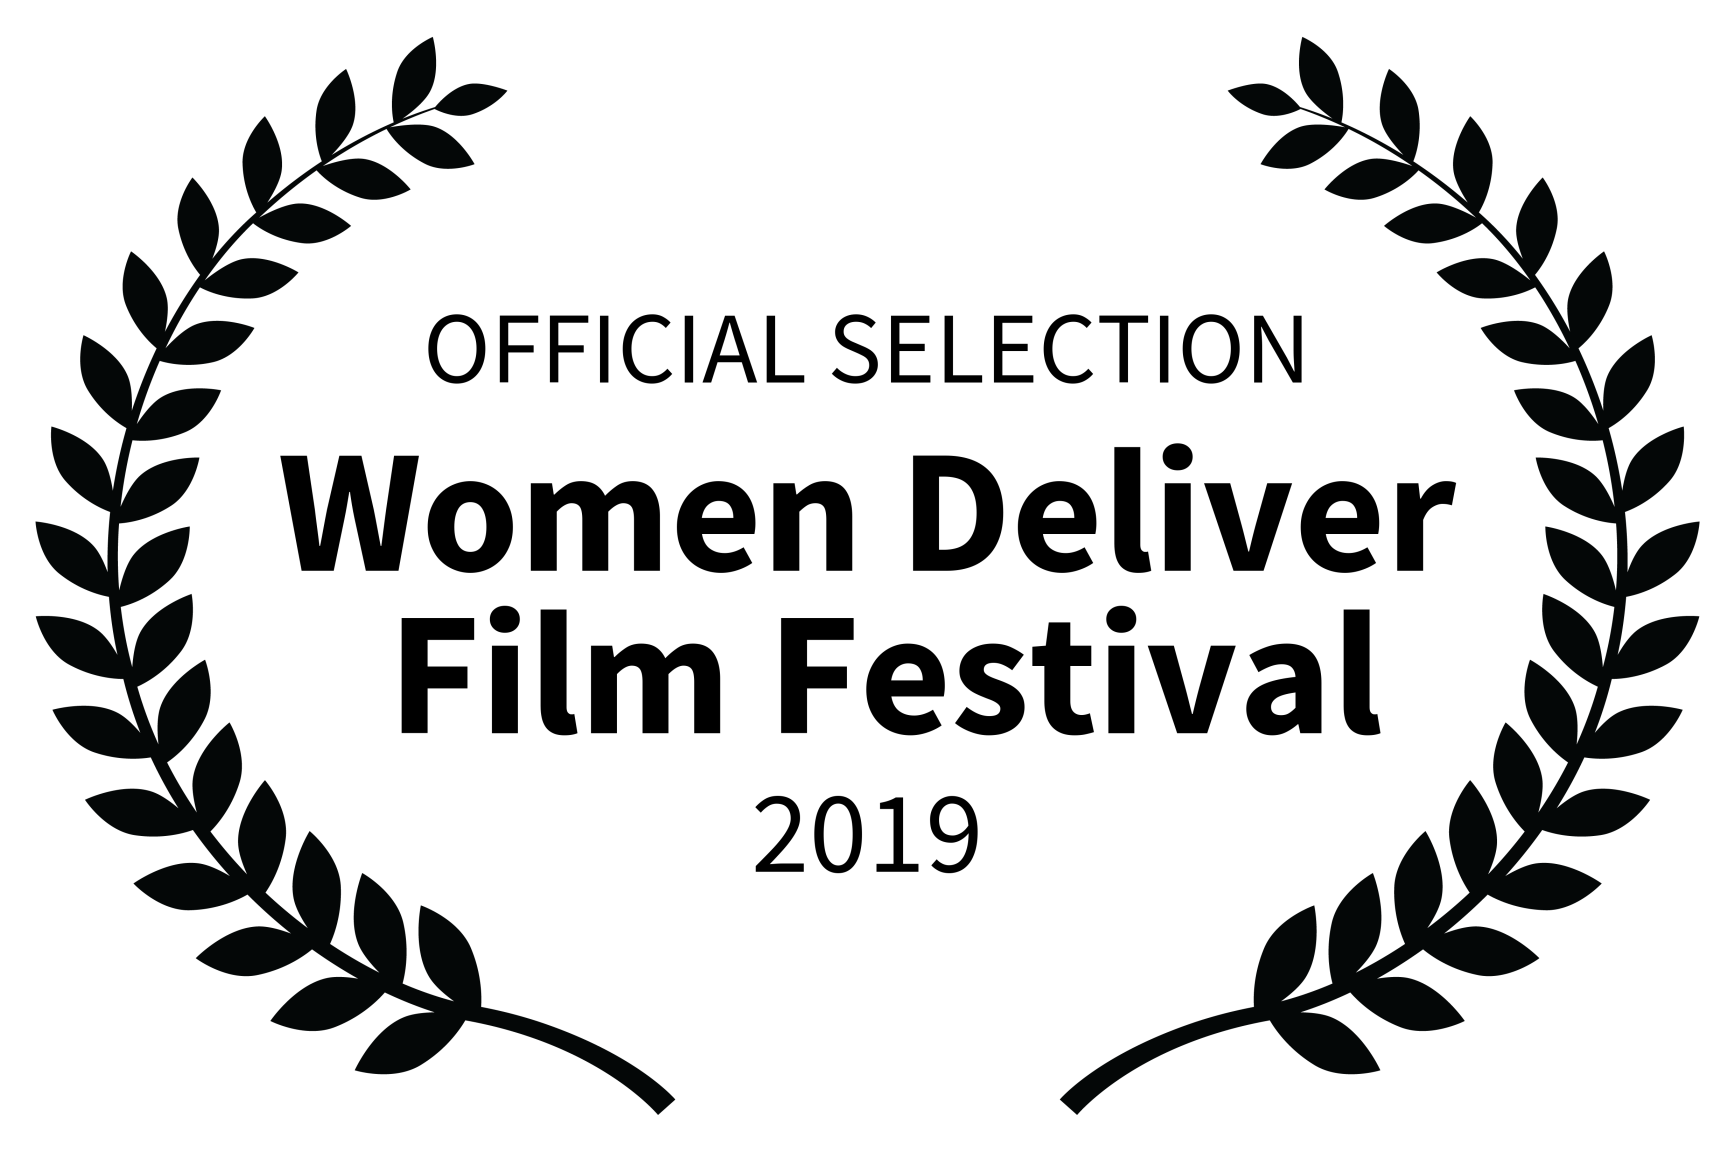 Enthusiastic Consent is heading to Vancouver! - The short, Enthusiastic Consent, has been selected to the Women Deliver Film Festival at the Women Deliver Conference in 2019. To learn more about this event go HERE.